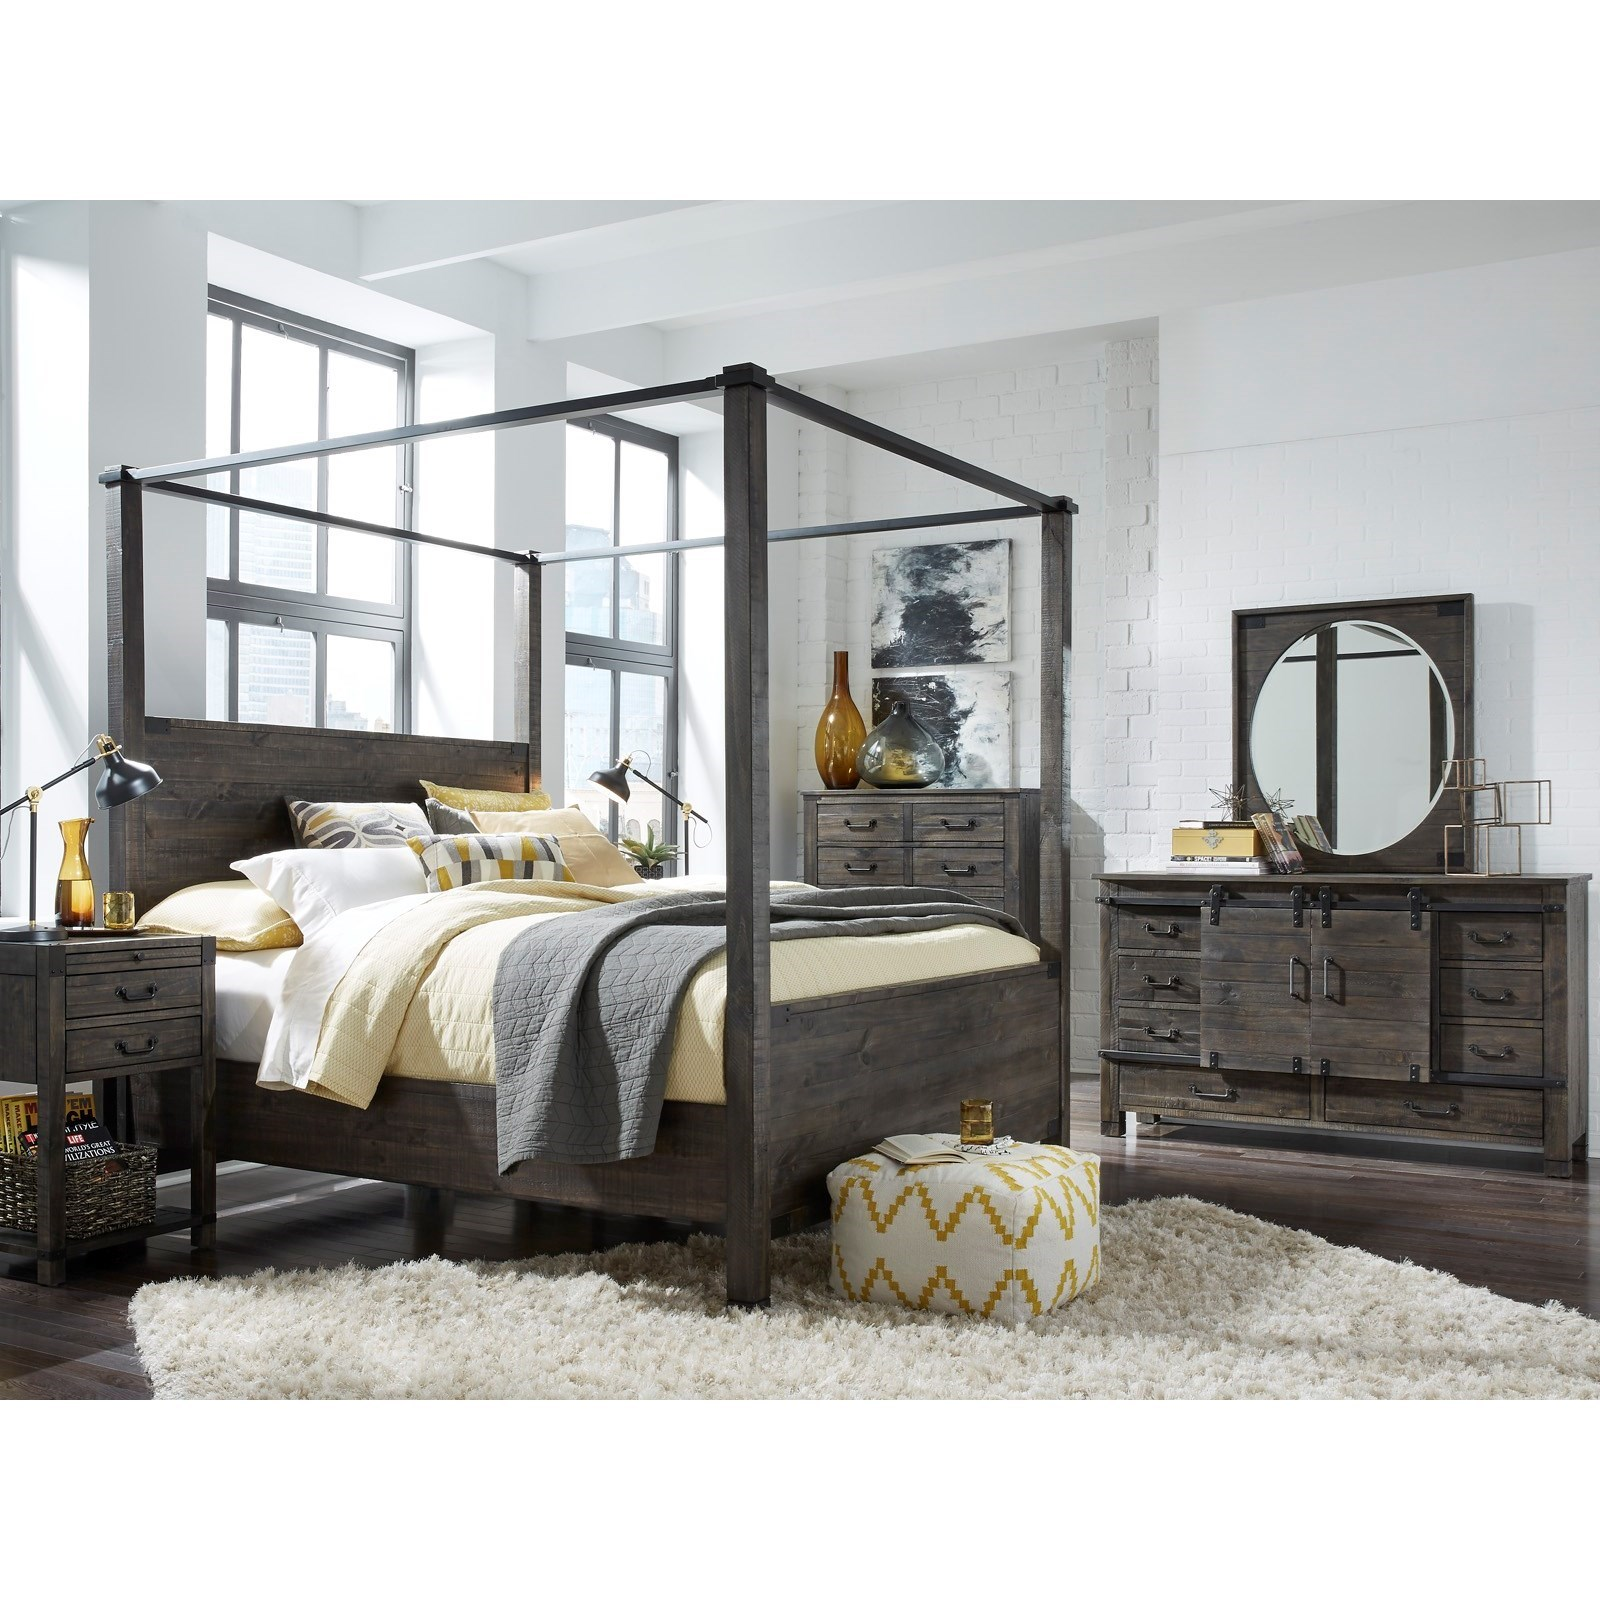 Abington Queen Bedroom Group by Magnussen Home at O'Dunk & O'Bright Furniture